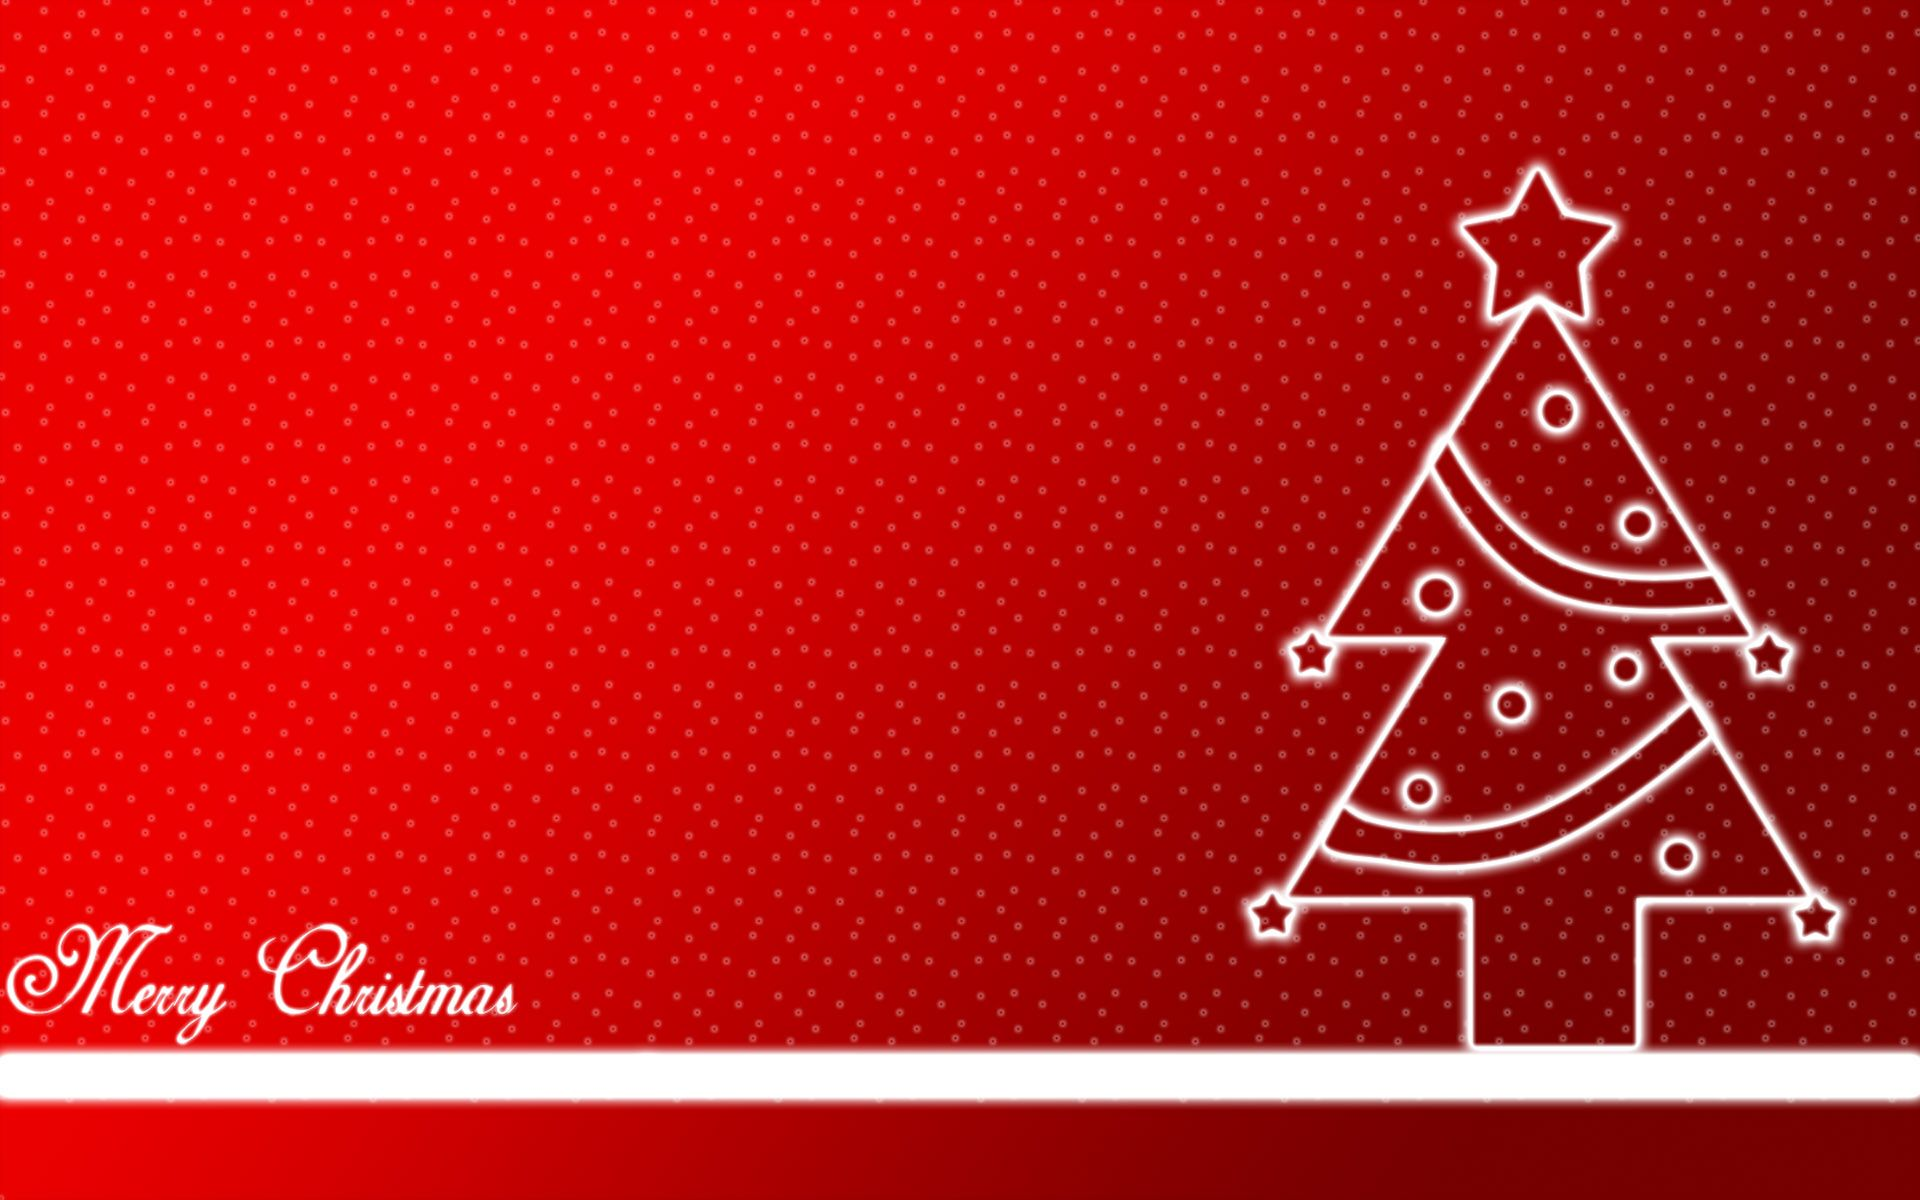 merry christmas with a tree wallpaper hd - http://imashon/w